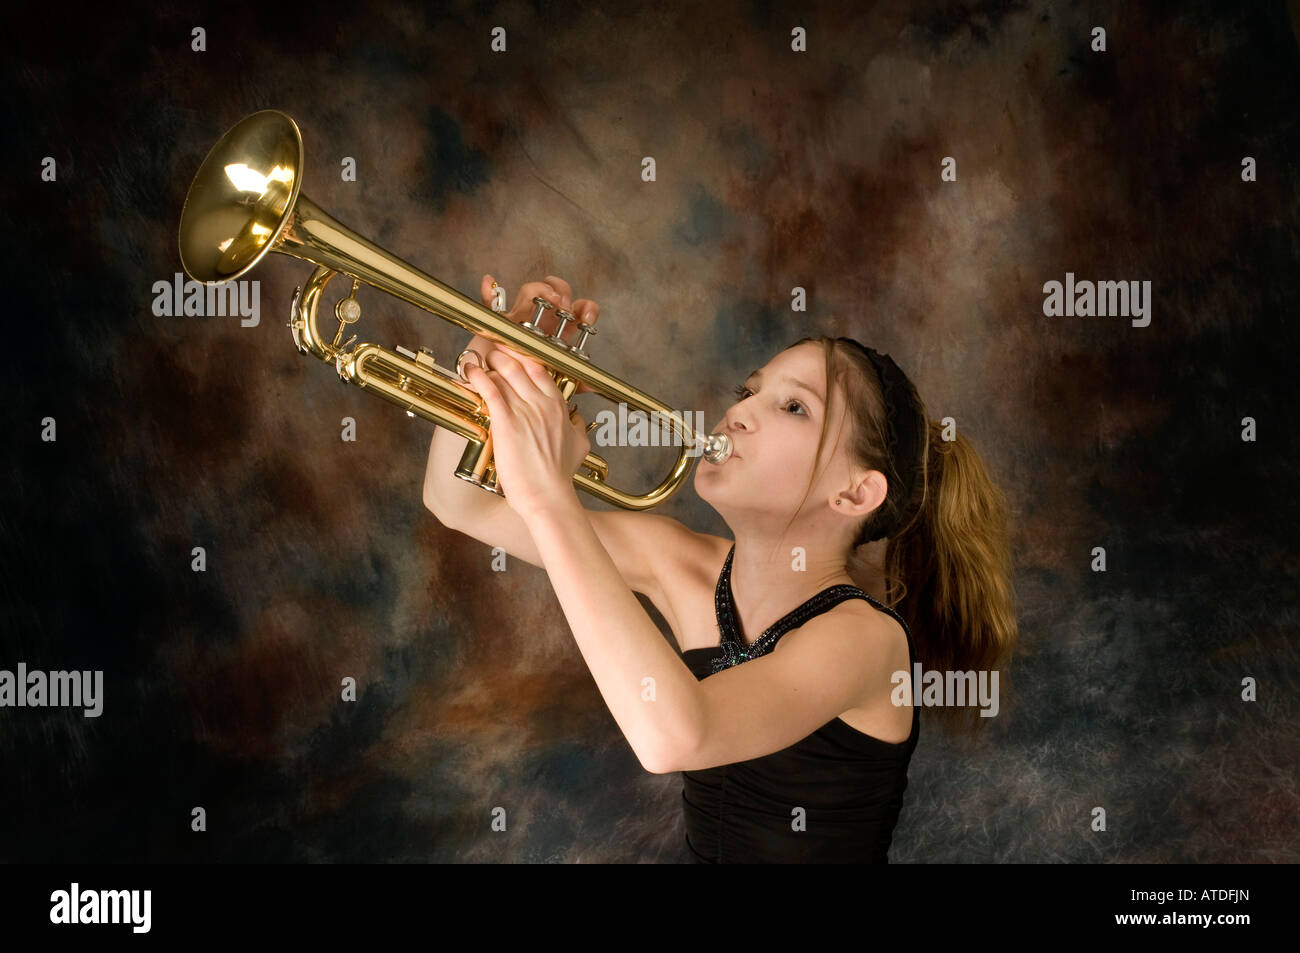 Young female student posing with trumpet - Stock Image